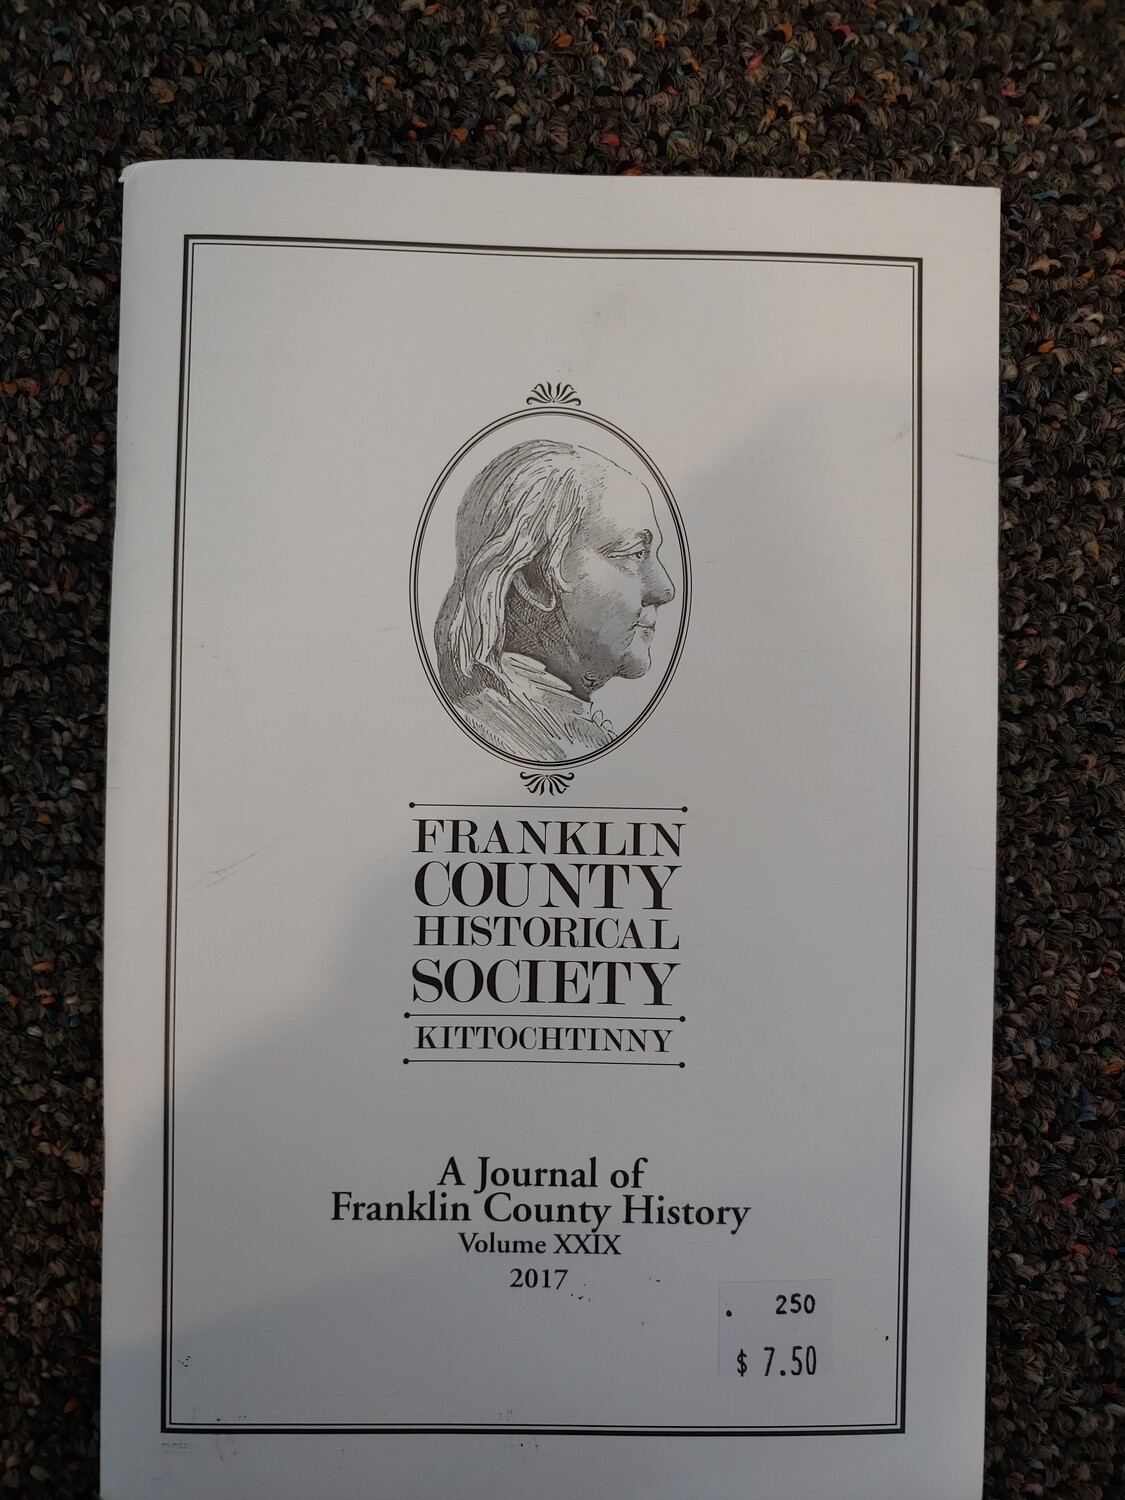 Franklin County Historical Society Journal 2017